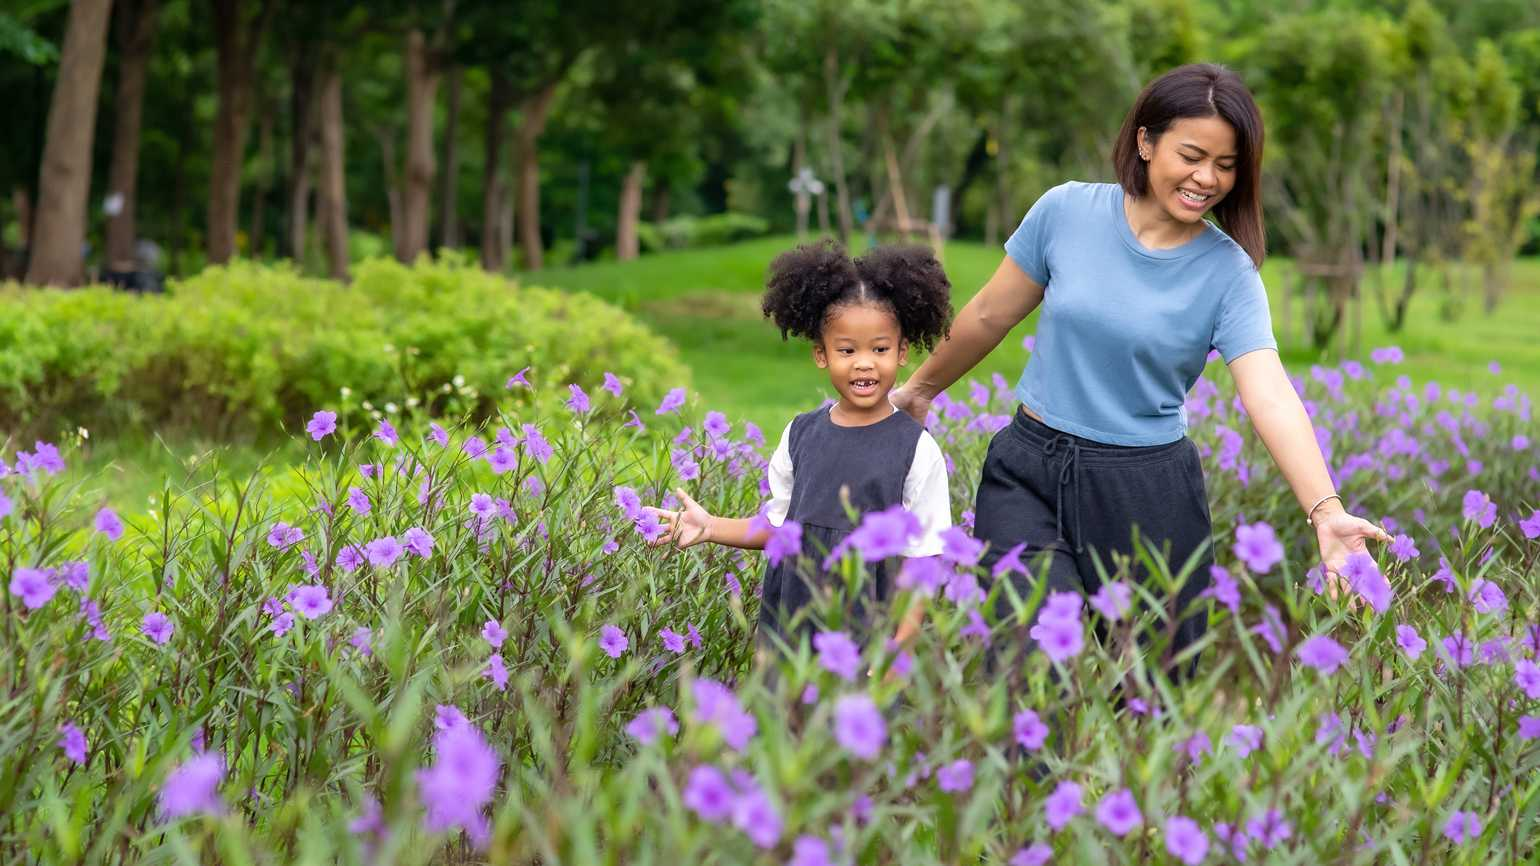 Mother and daughter in a field of flowers; Getty Images